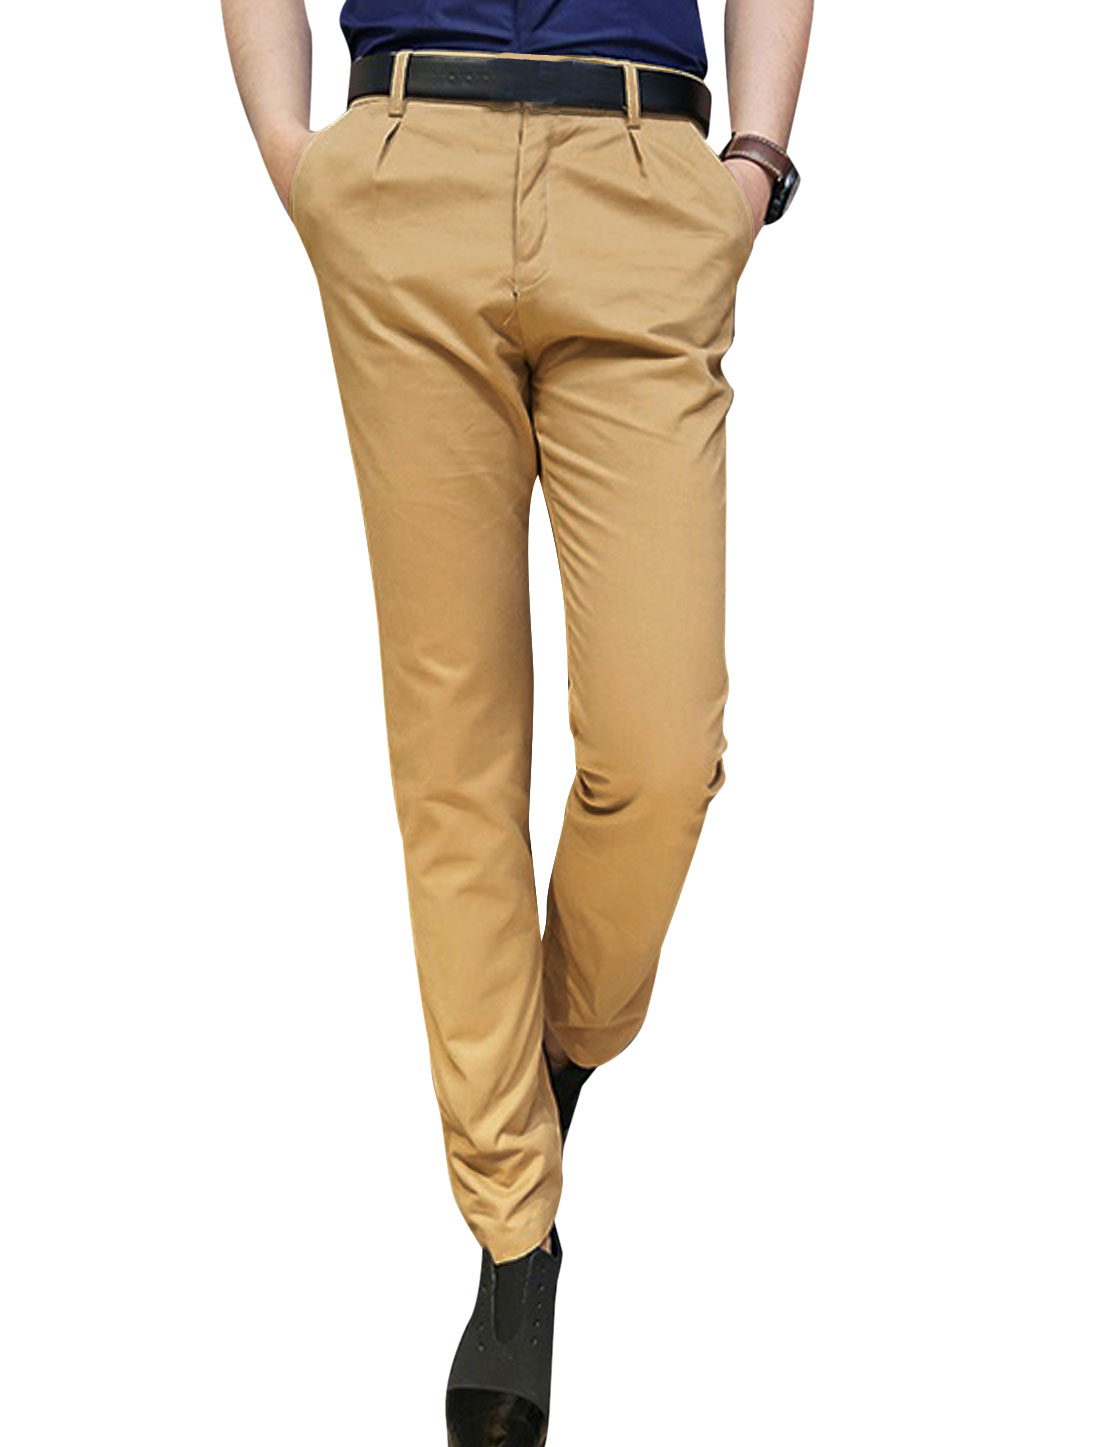 Men's Slant Front Pockets Single Button Closure Cropped Pants Light Brown W30